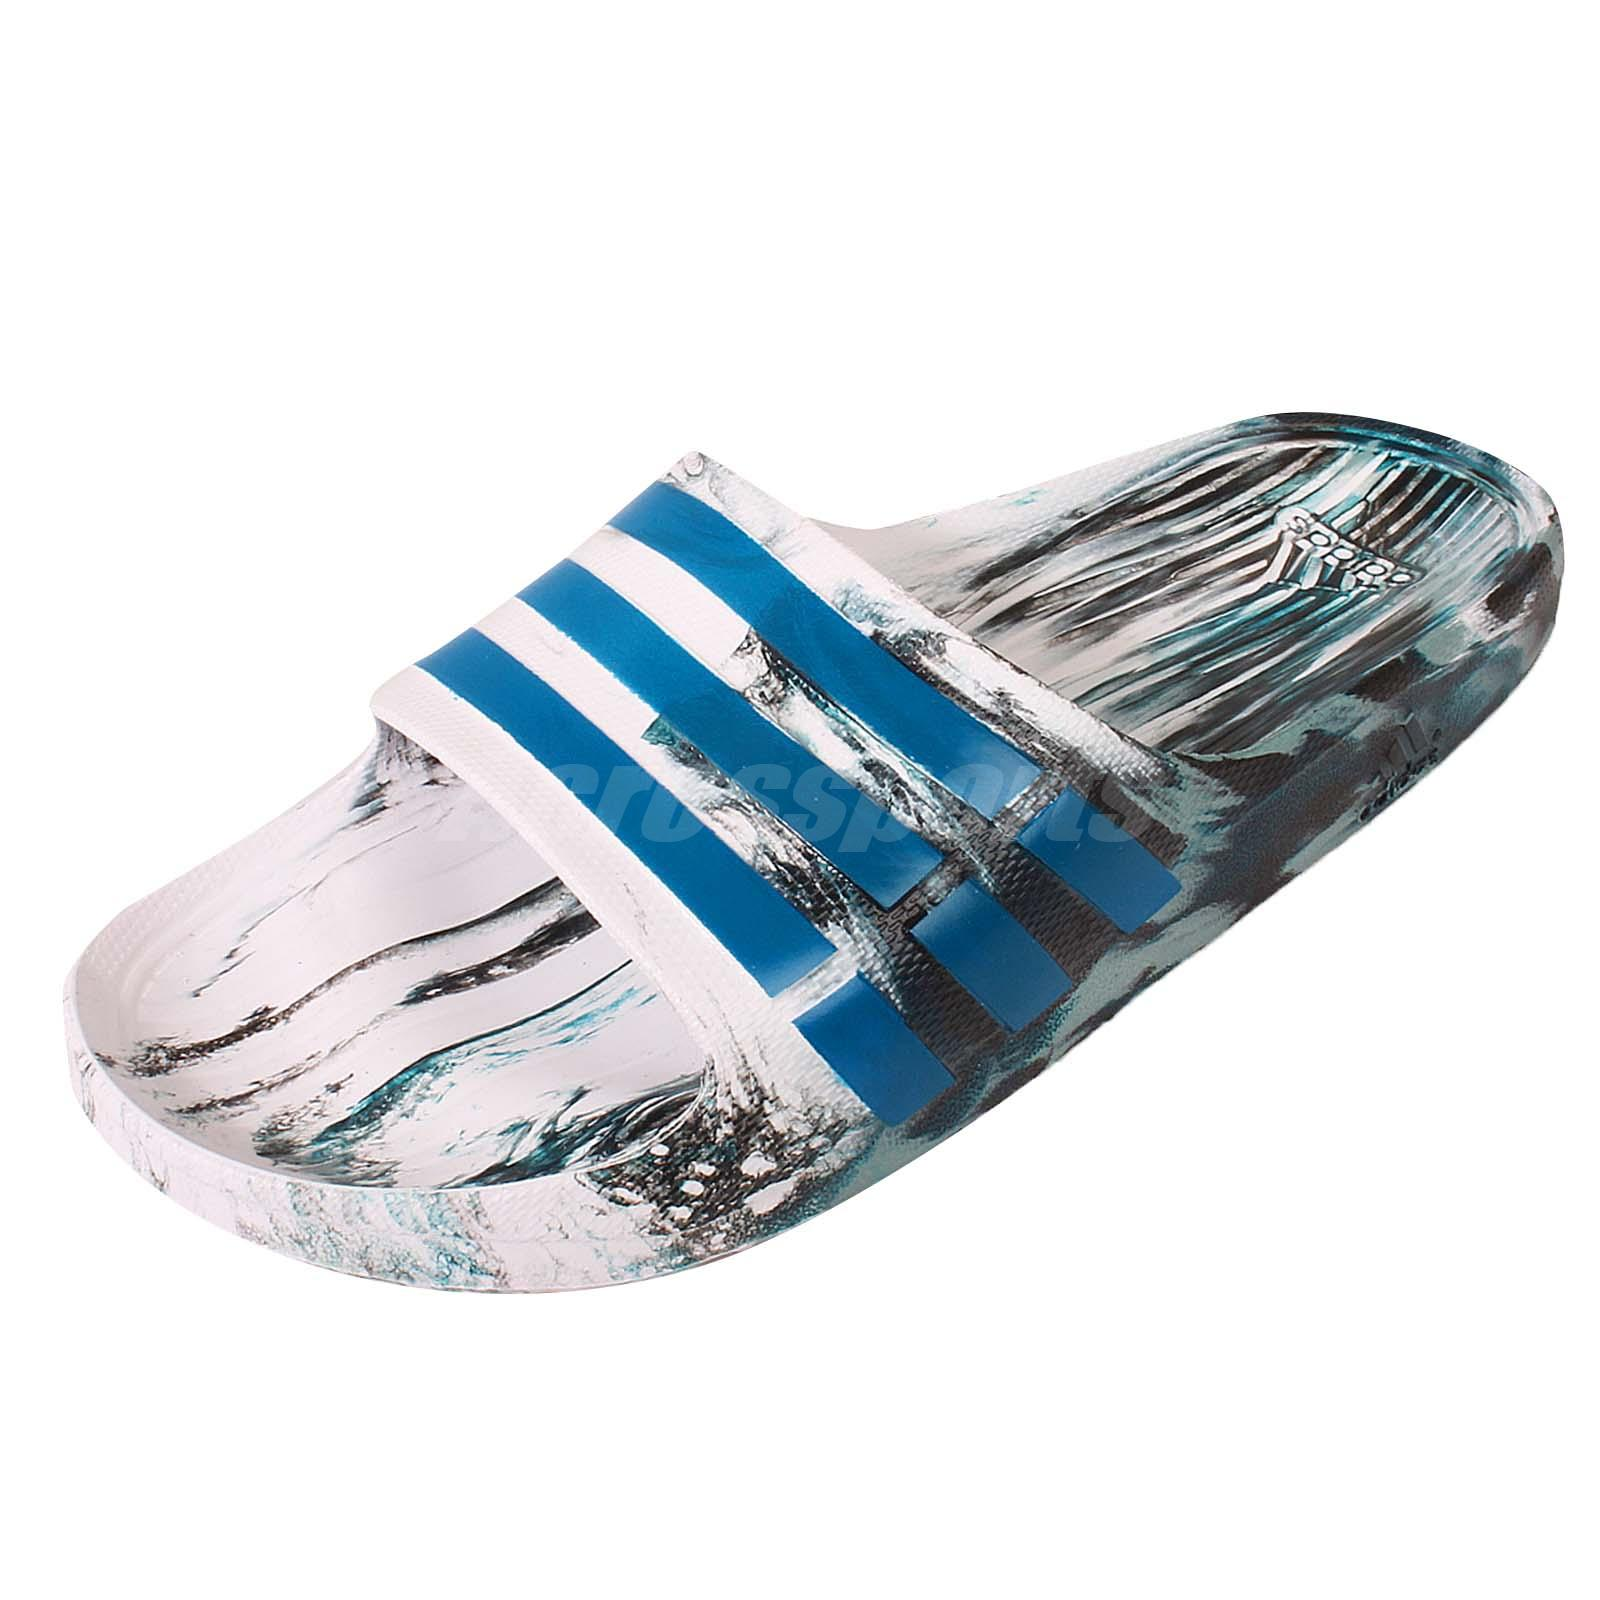 047371c5383 Buy adidas flip flops mens white   OFF58% Discounted